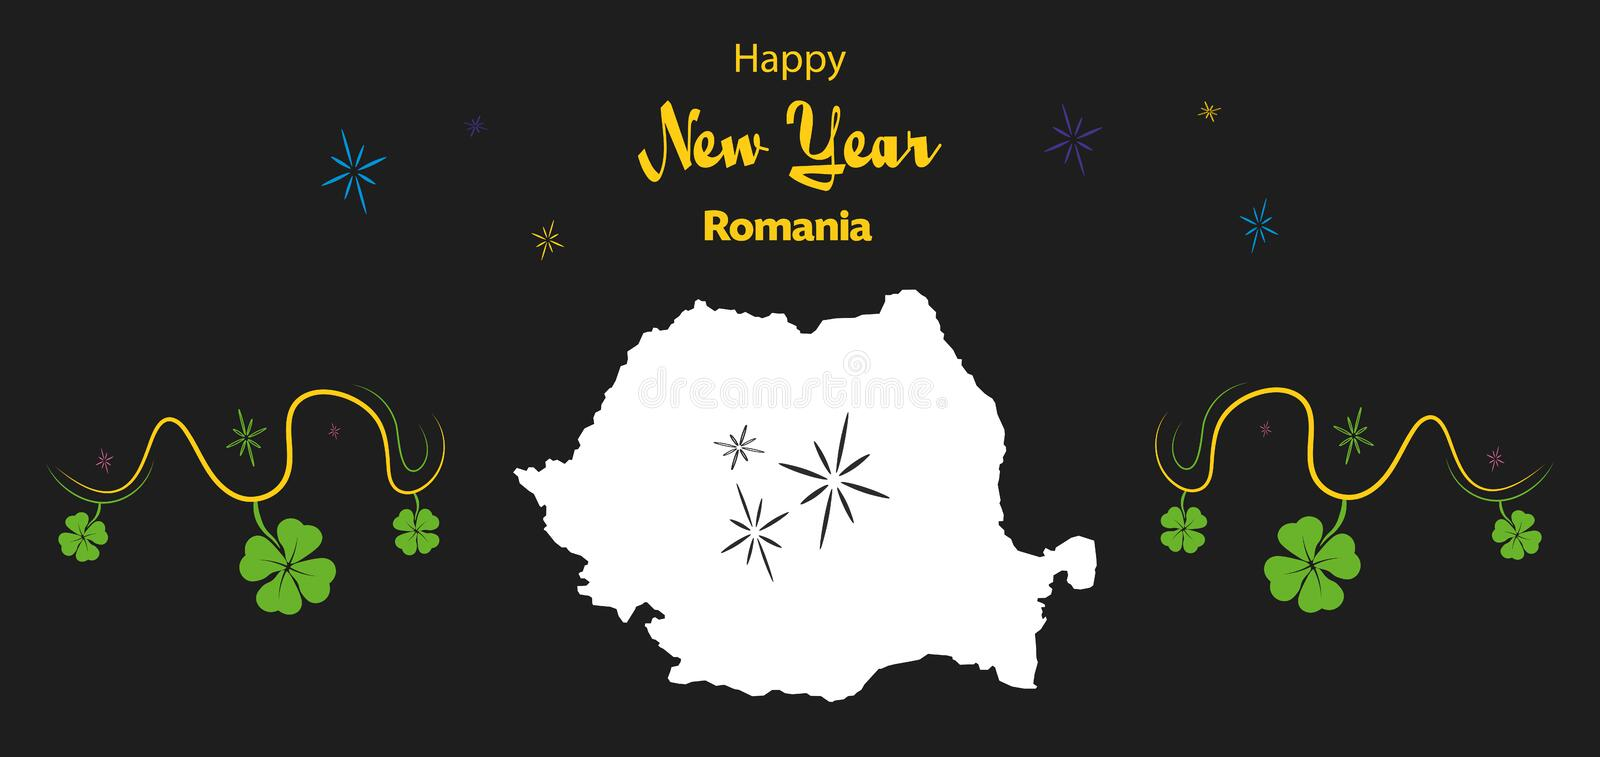 Happy New Year theme with map of Romania vector illustration